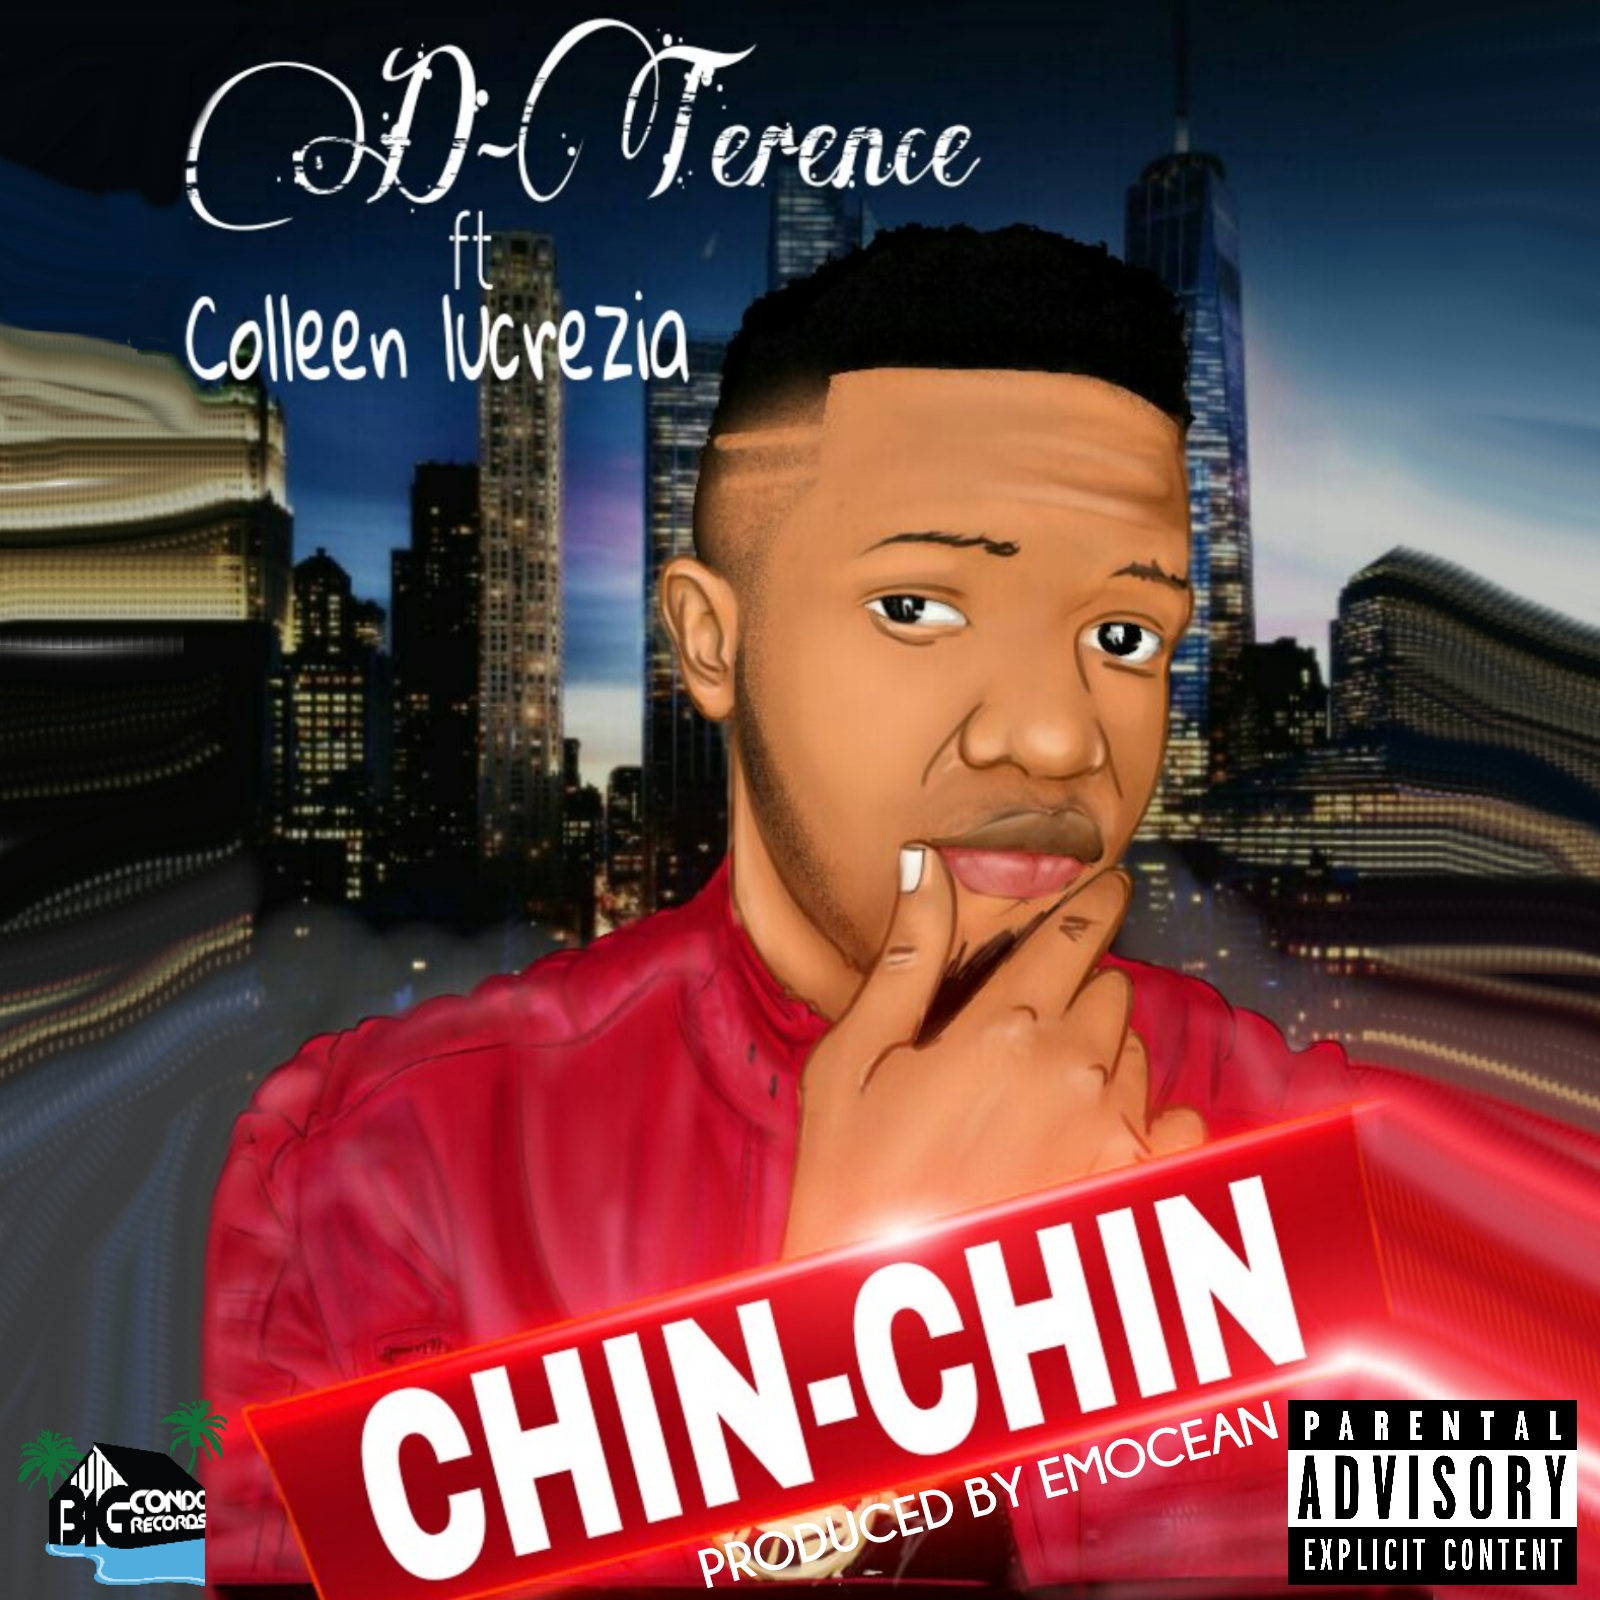 d-terence-chin-chin